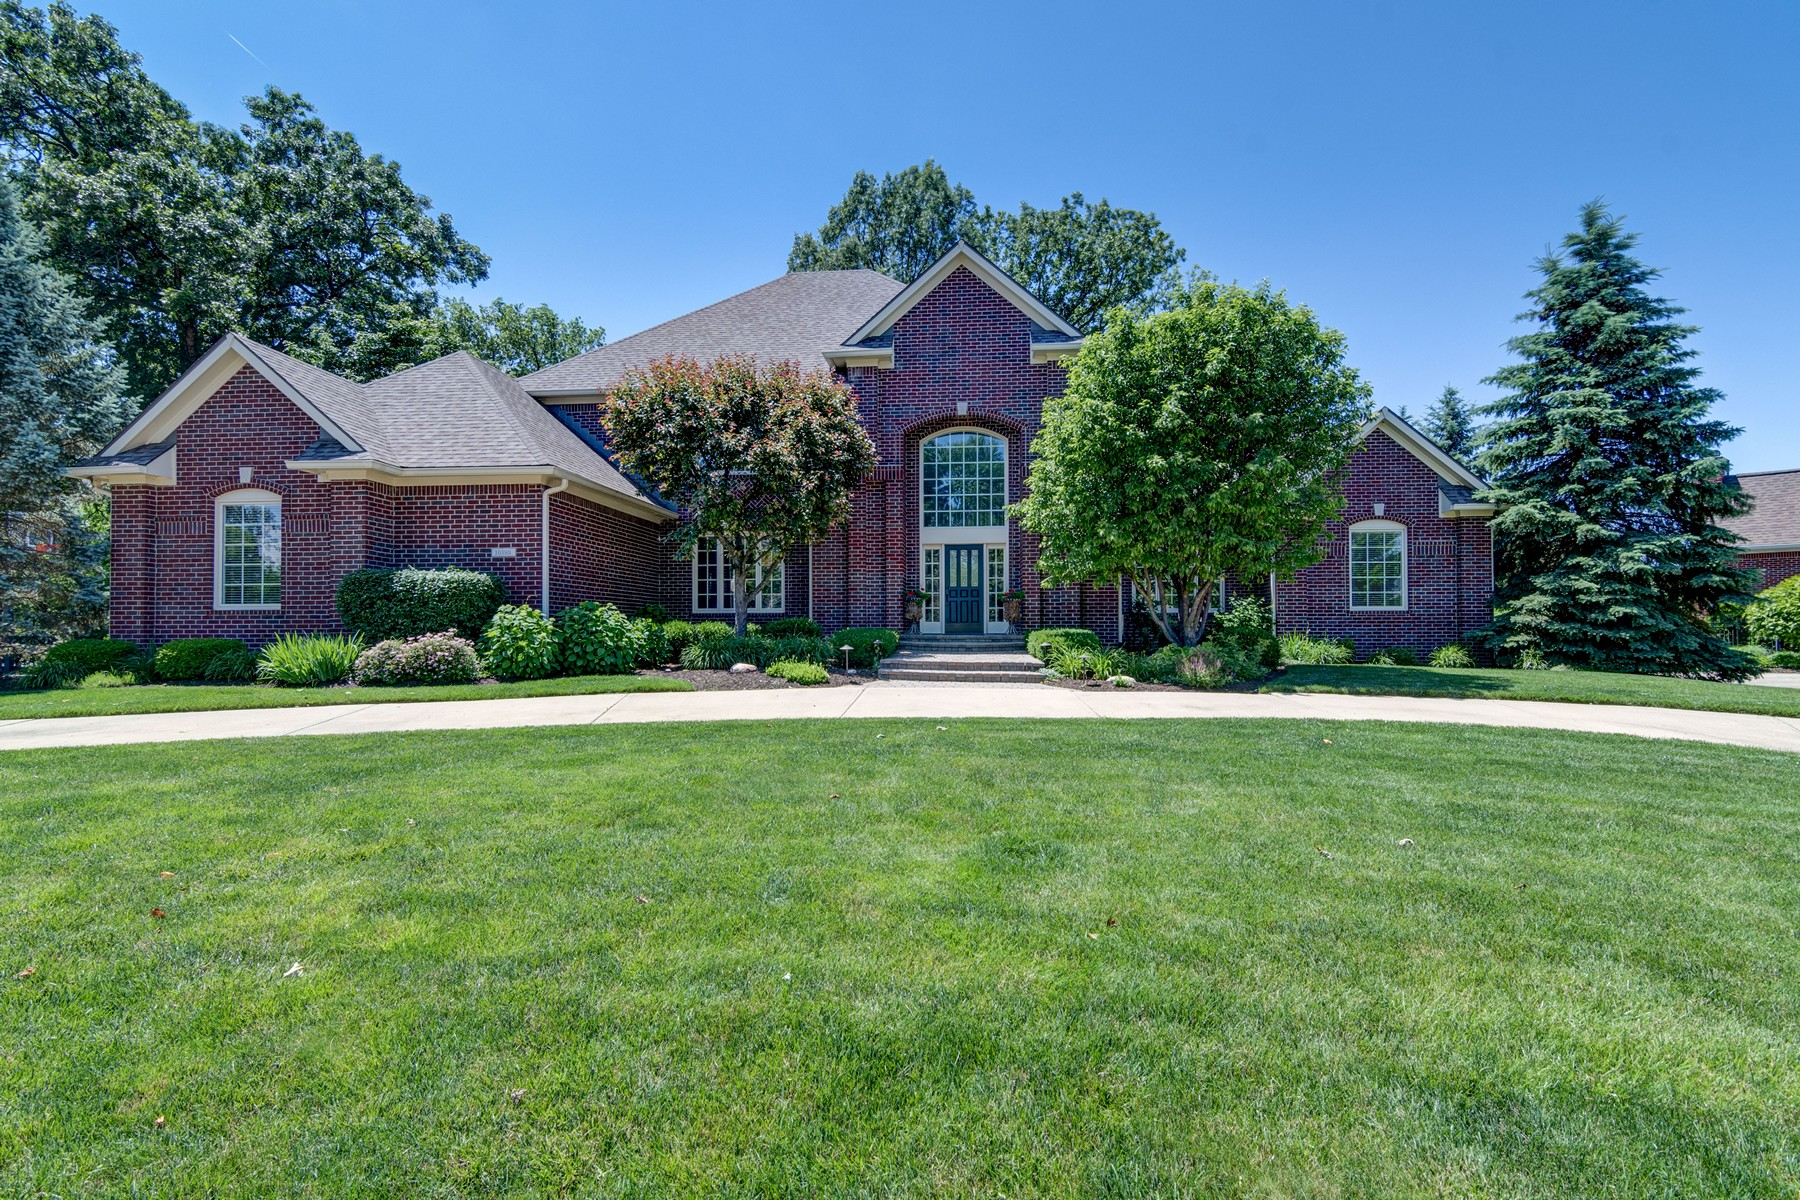 Single Family Home for Sale at Architectural Beauty 10380 High Grove Carmel, Indiana, 46032 United States